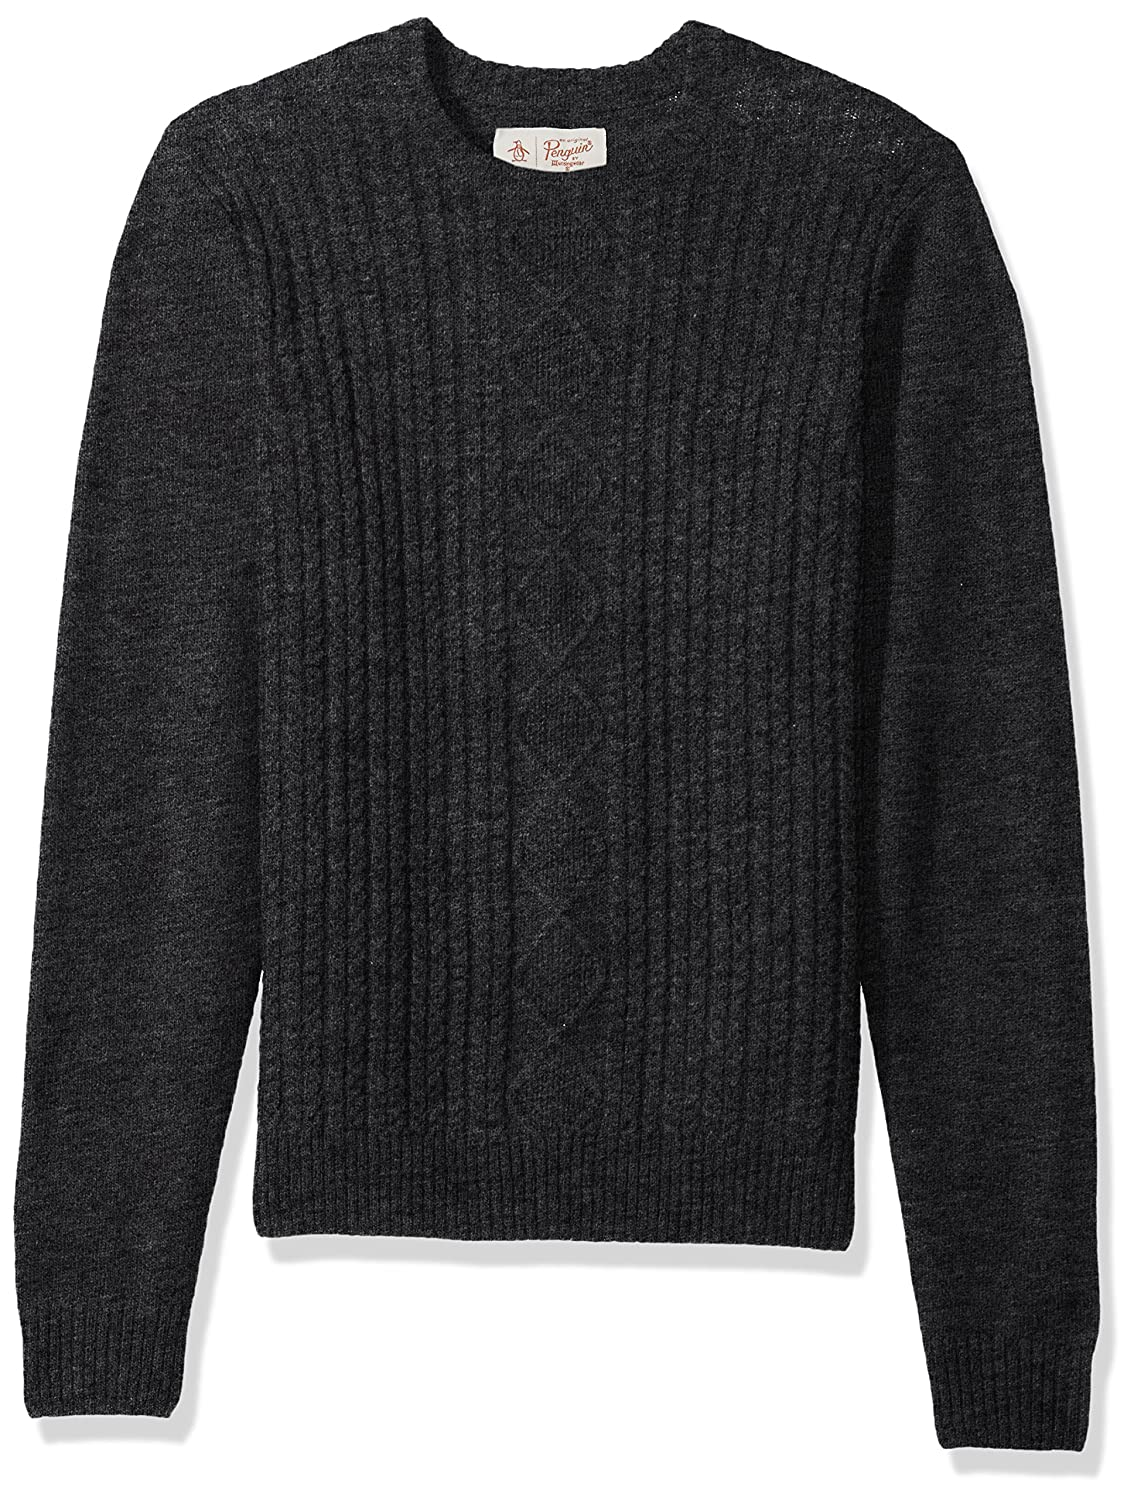 Original Penguin Men's Fisherman's Cable Crew Sweater OPGF7C12